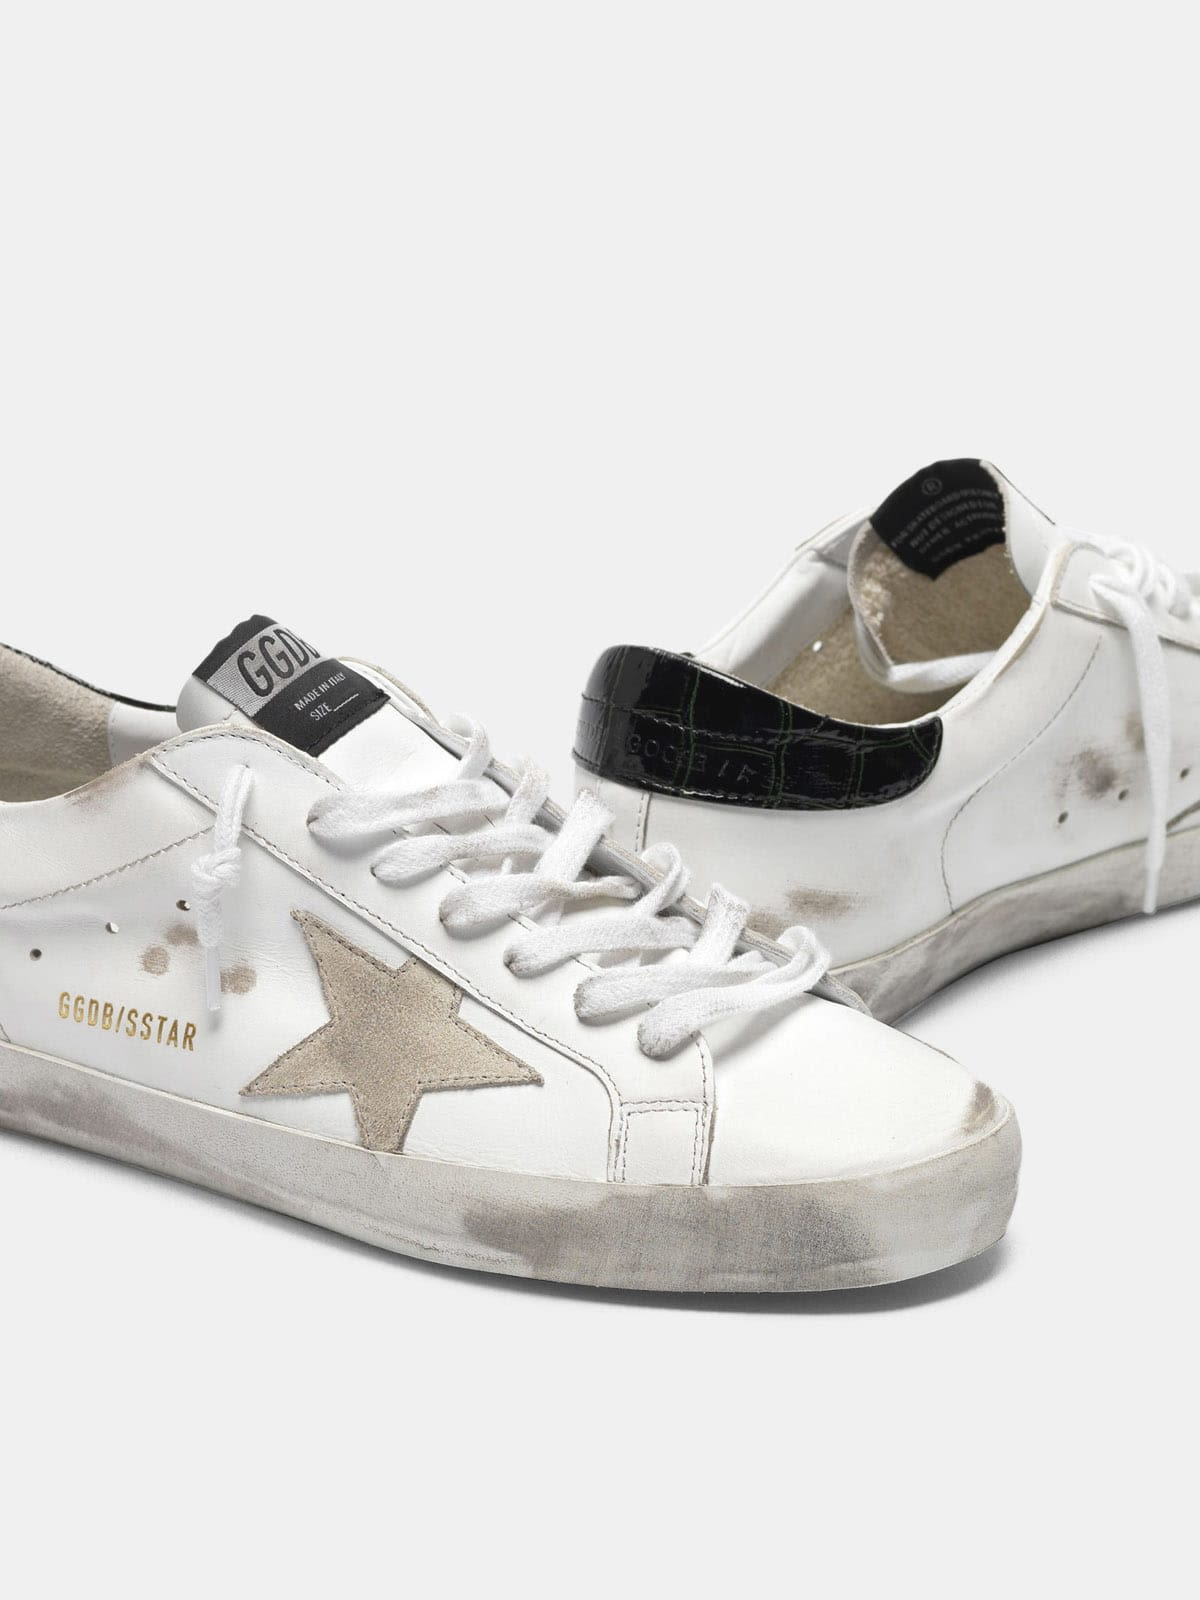 White Super-Star sneakers with black croc-print heel tab